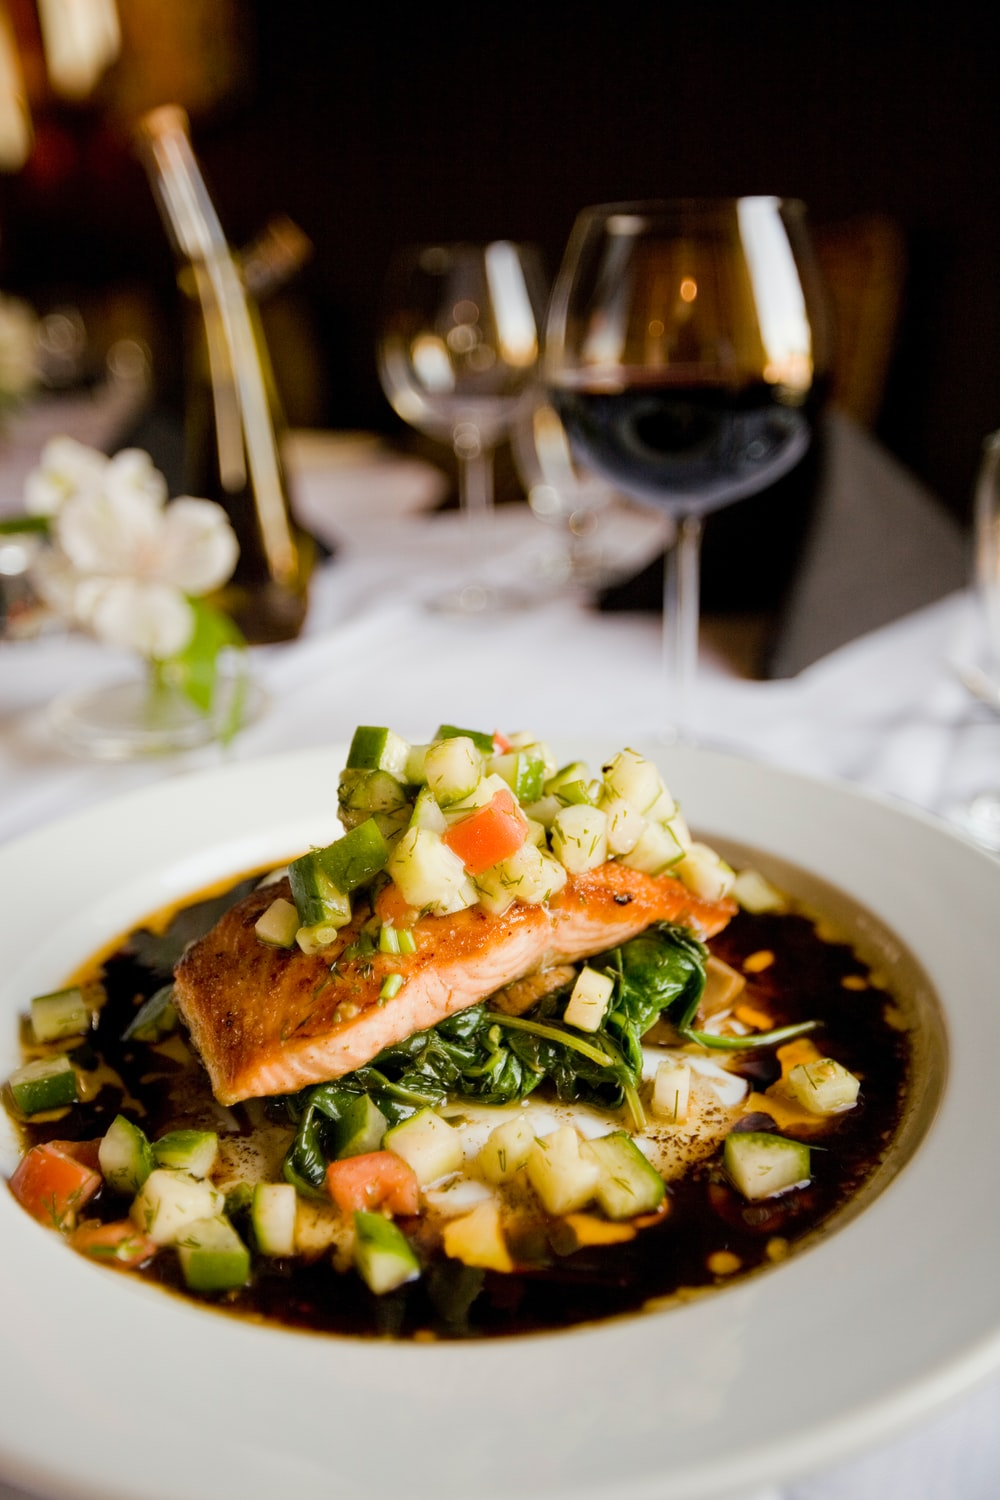 A deep dish with a meal with salmon and zucchini next to a wine glass on a white tablecloth